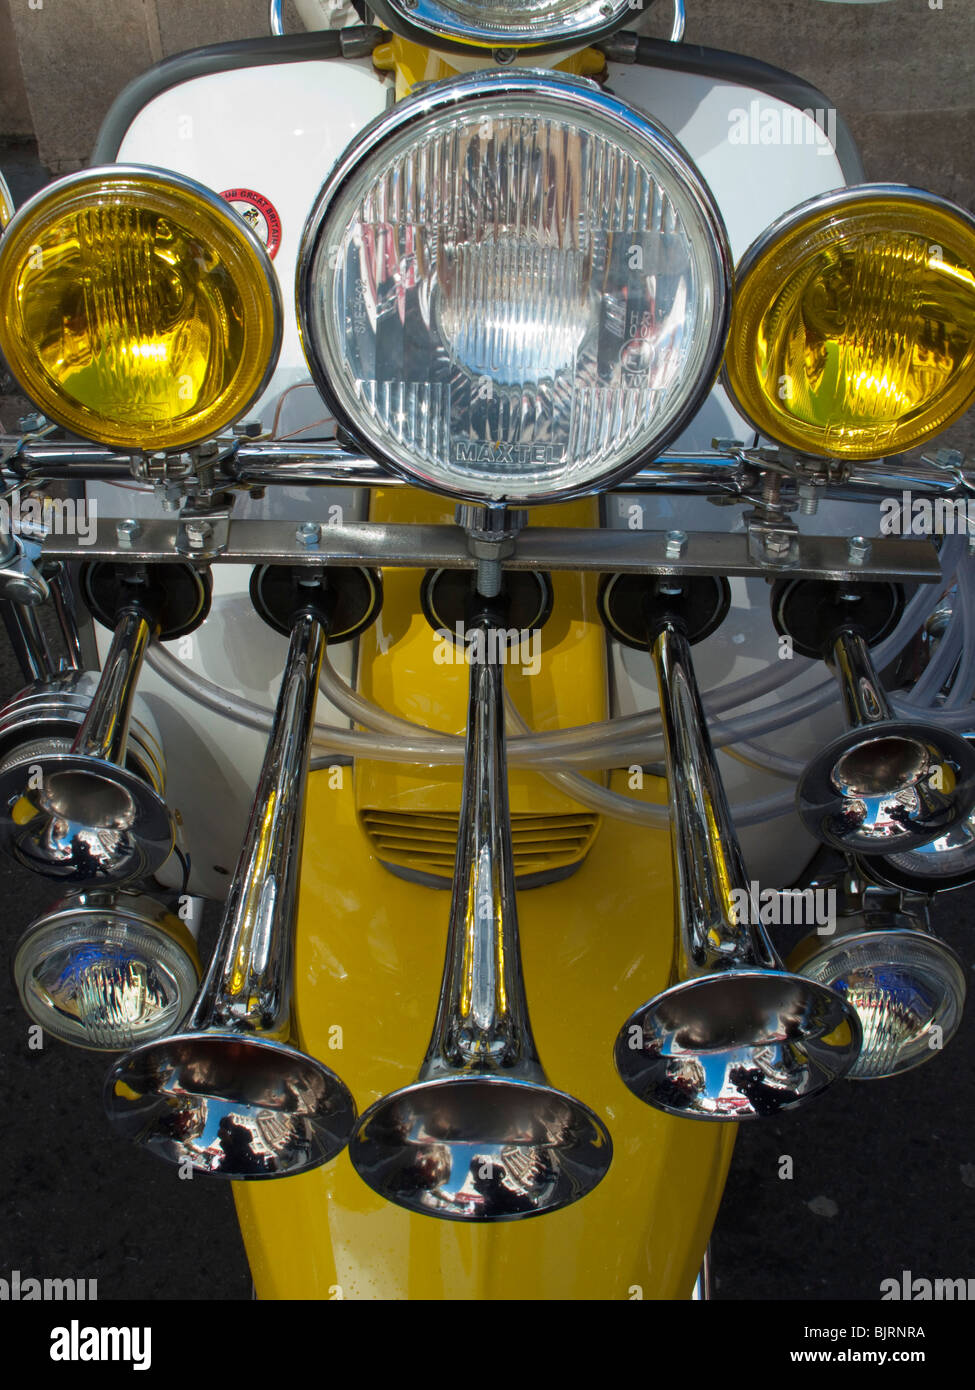 Customised scooter from the 1960's, Mod's Lambretta with lamps, mirrrs and badges - Stock Image